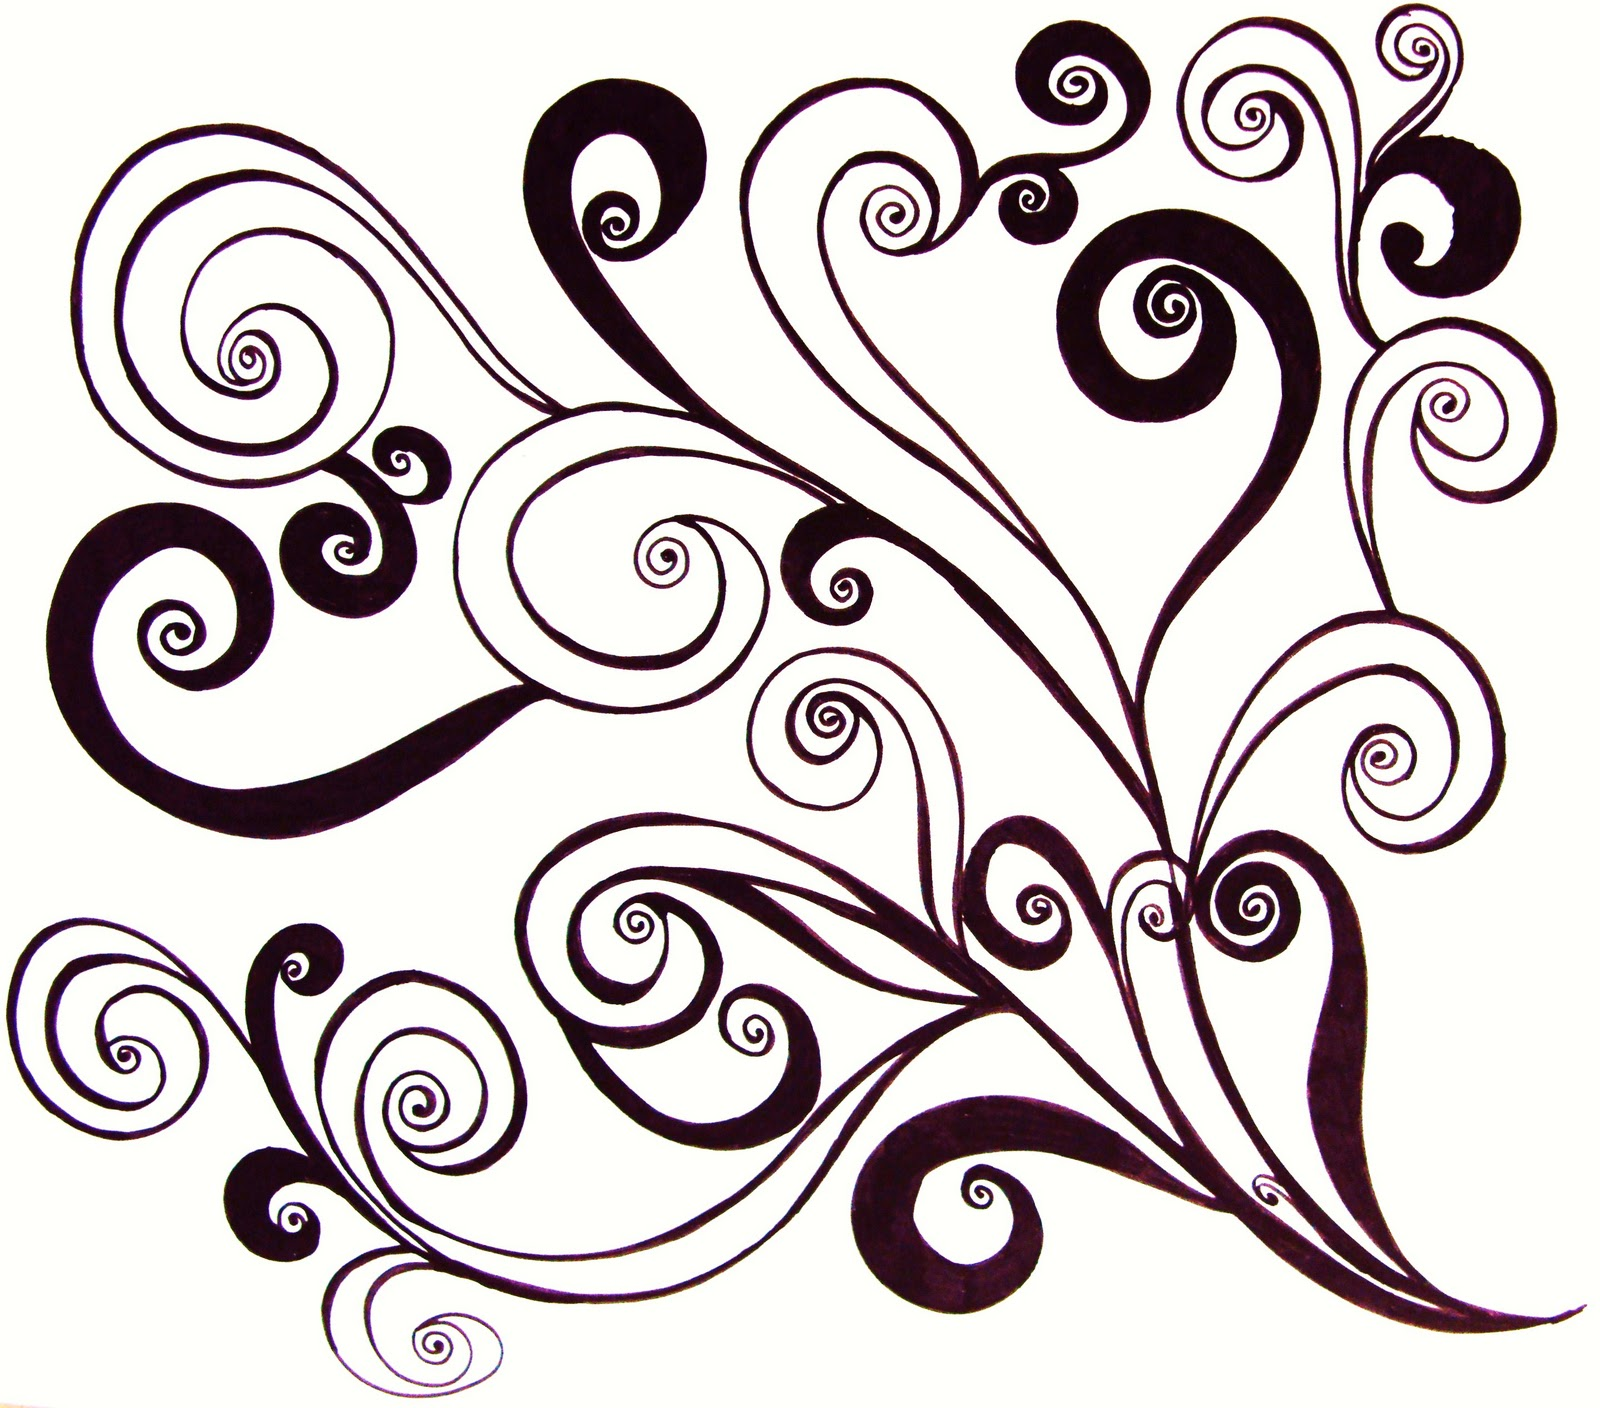 17 swirl pattern design images tattoo swirl designs clip art black swirl designs clip art and. Black Bedroom Furniture Sets. Home Design Ideas